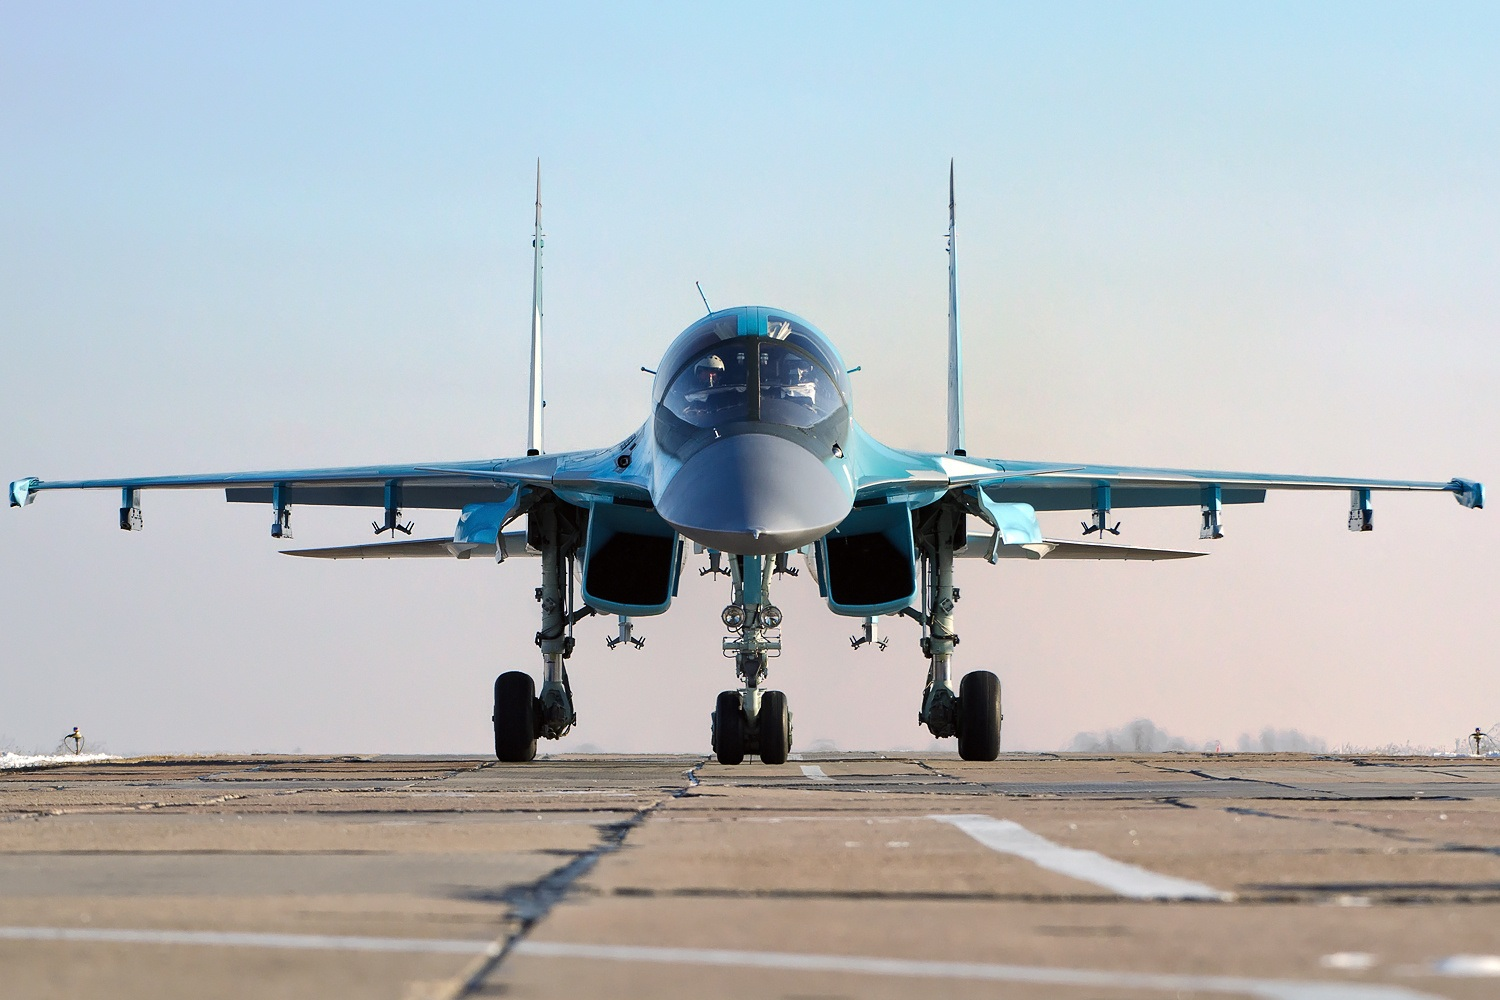 military picture sukhoi su - photo #42